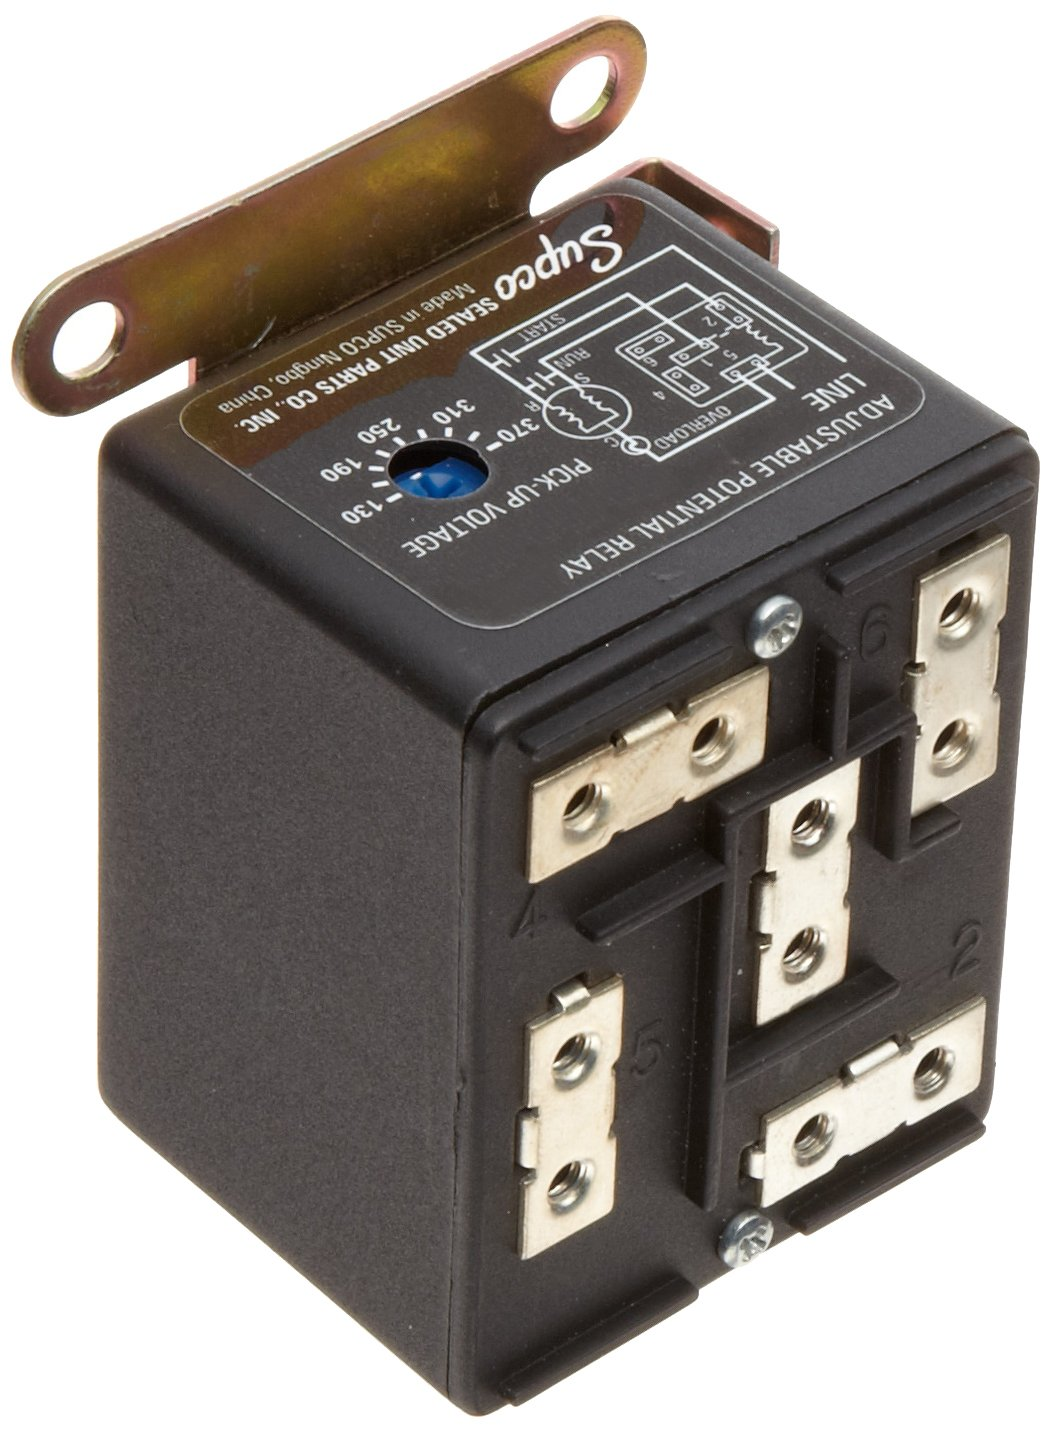 Packard Aftermarket Replacement Motor Start Capacitor 161-193 MFD 220-250 Volt Supco PTMJ161